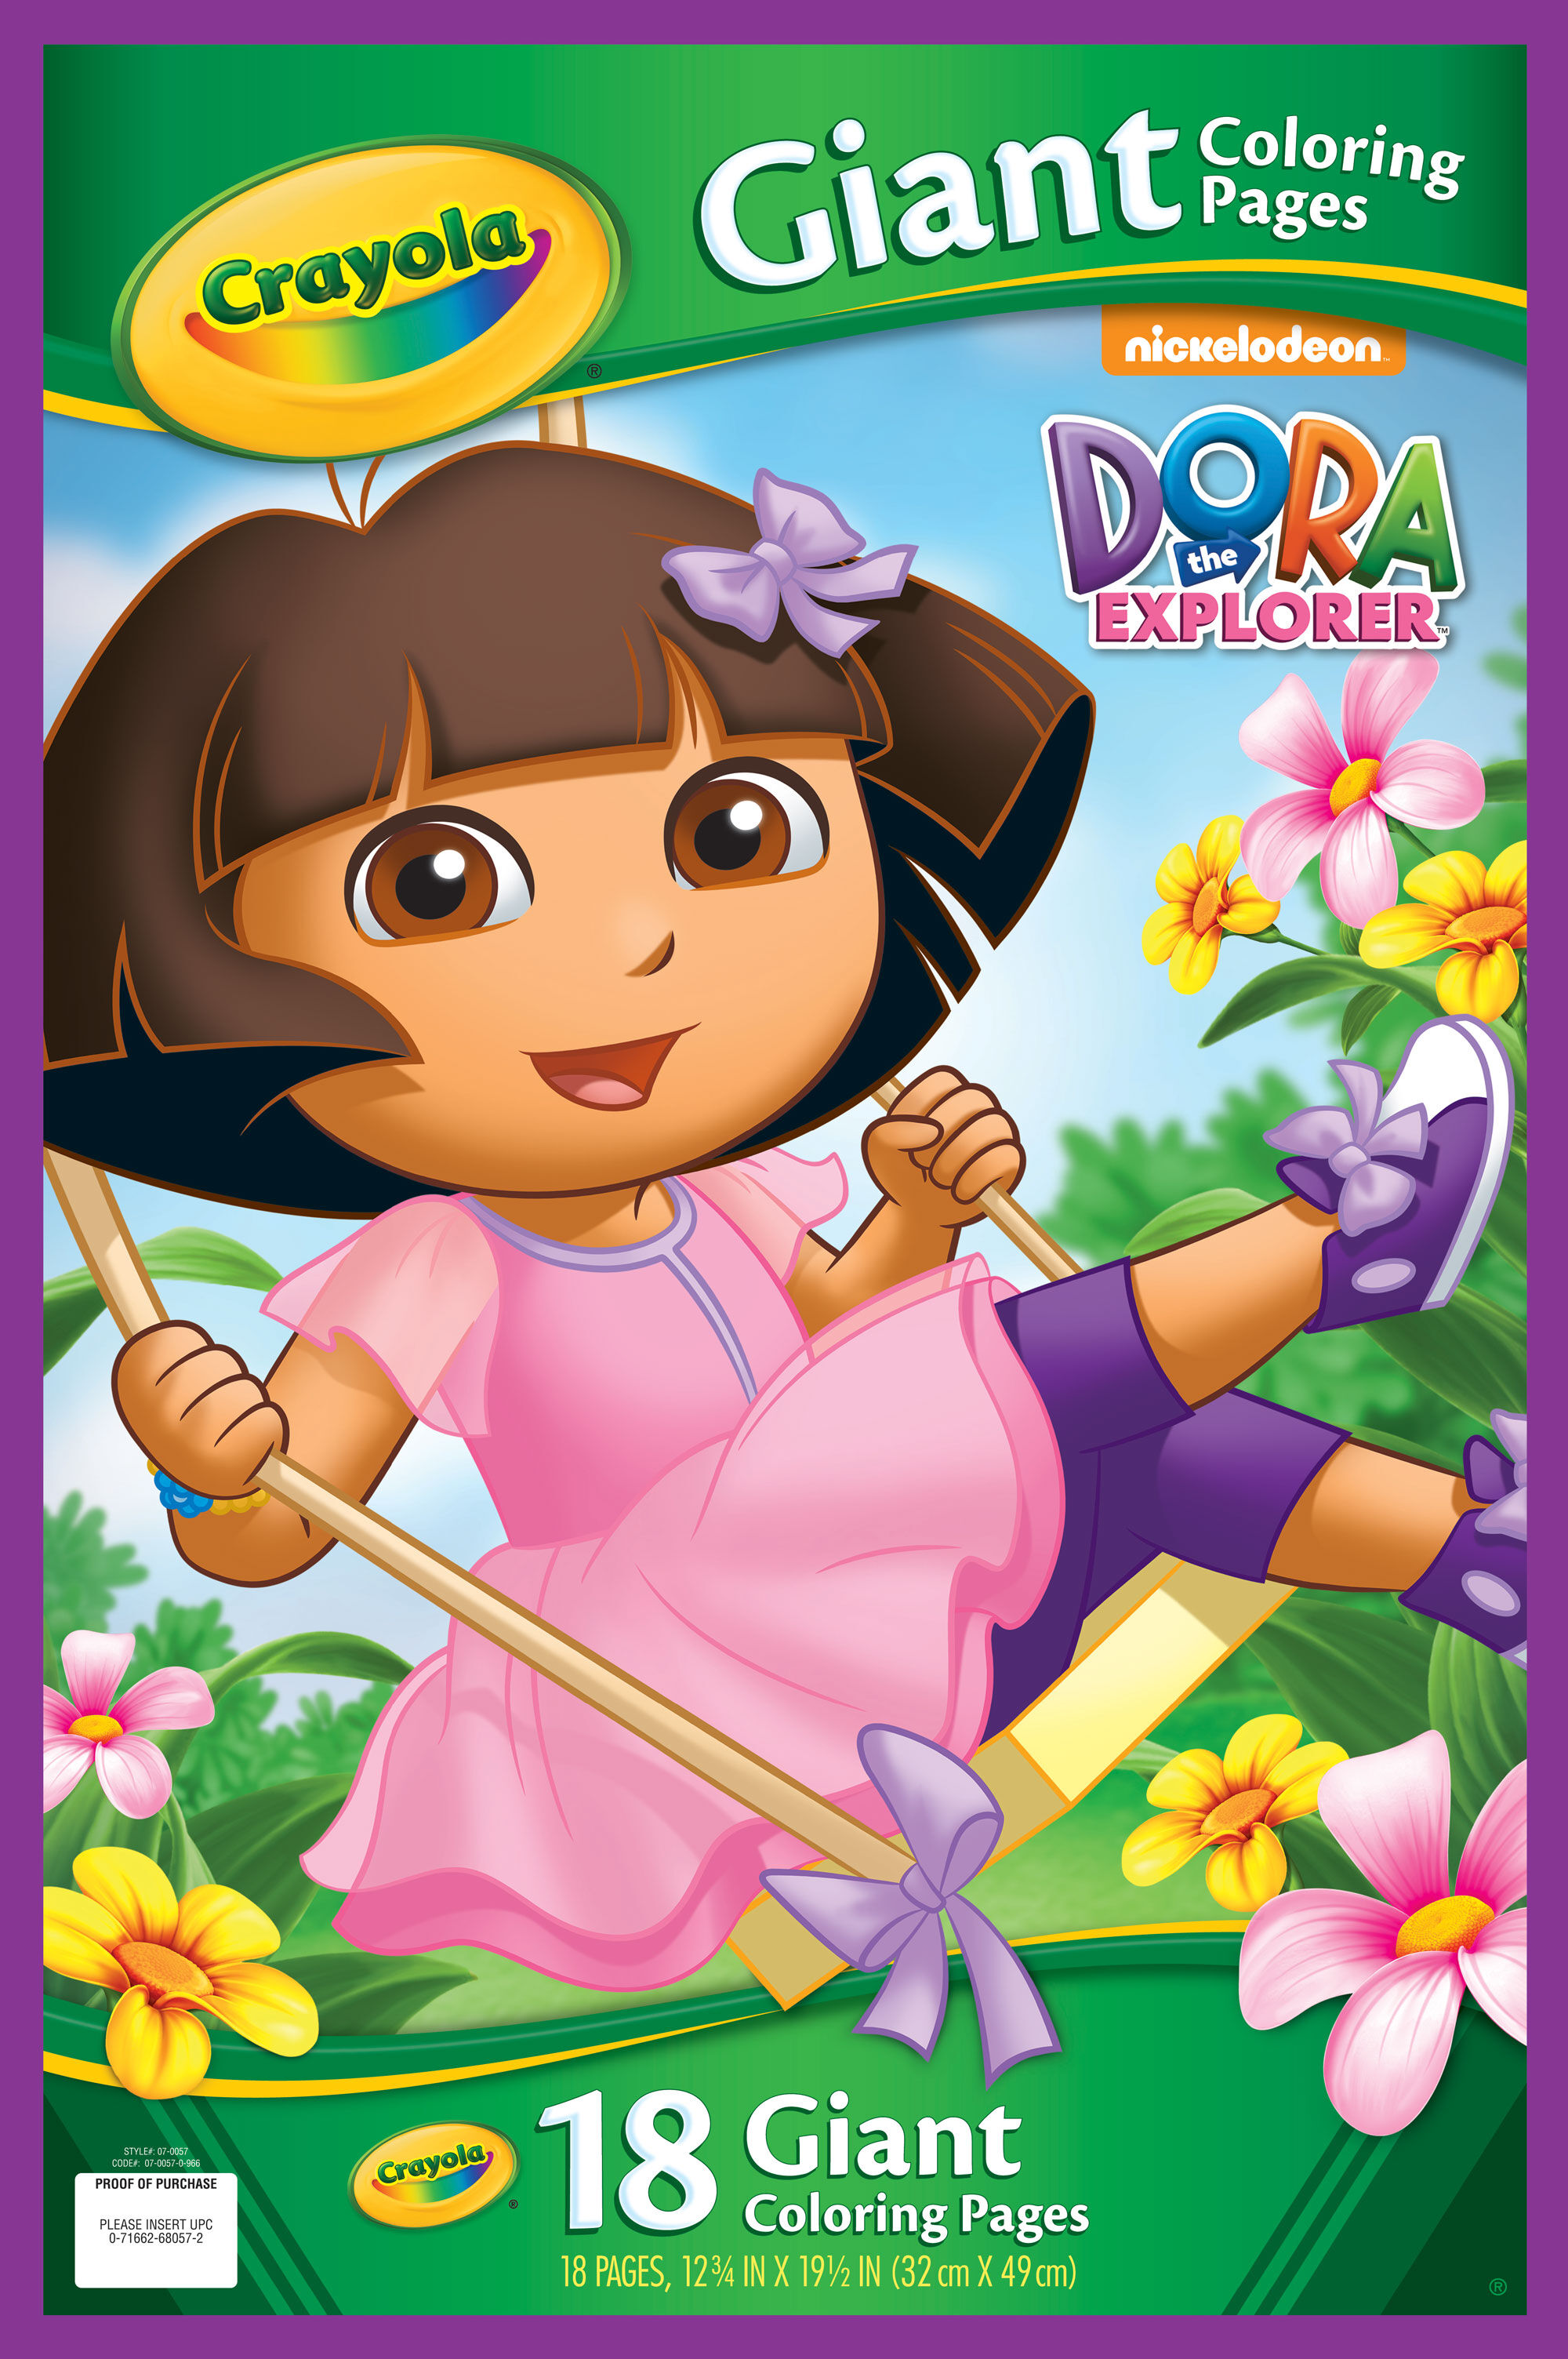 - Giant Coloring Pages - Dora The Explorer Crayola